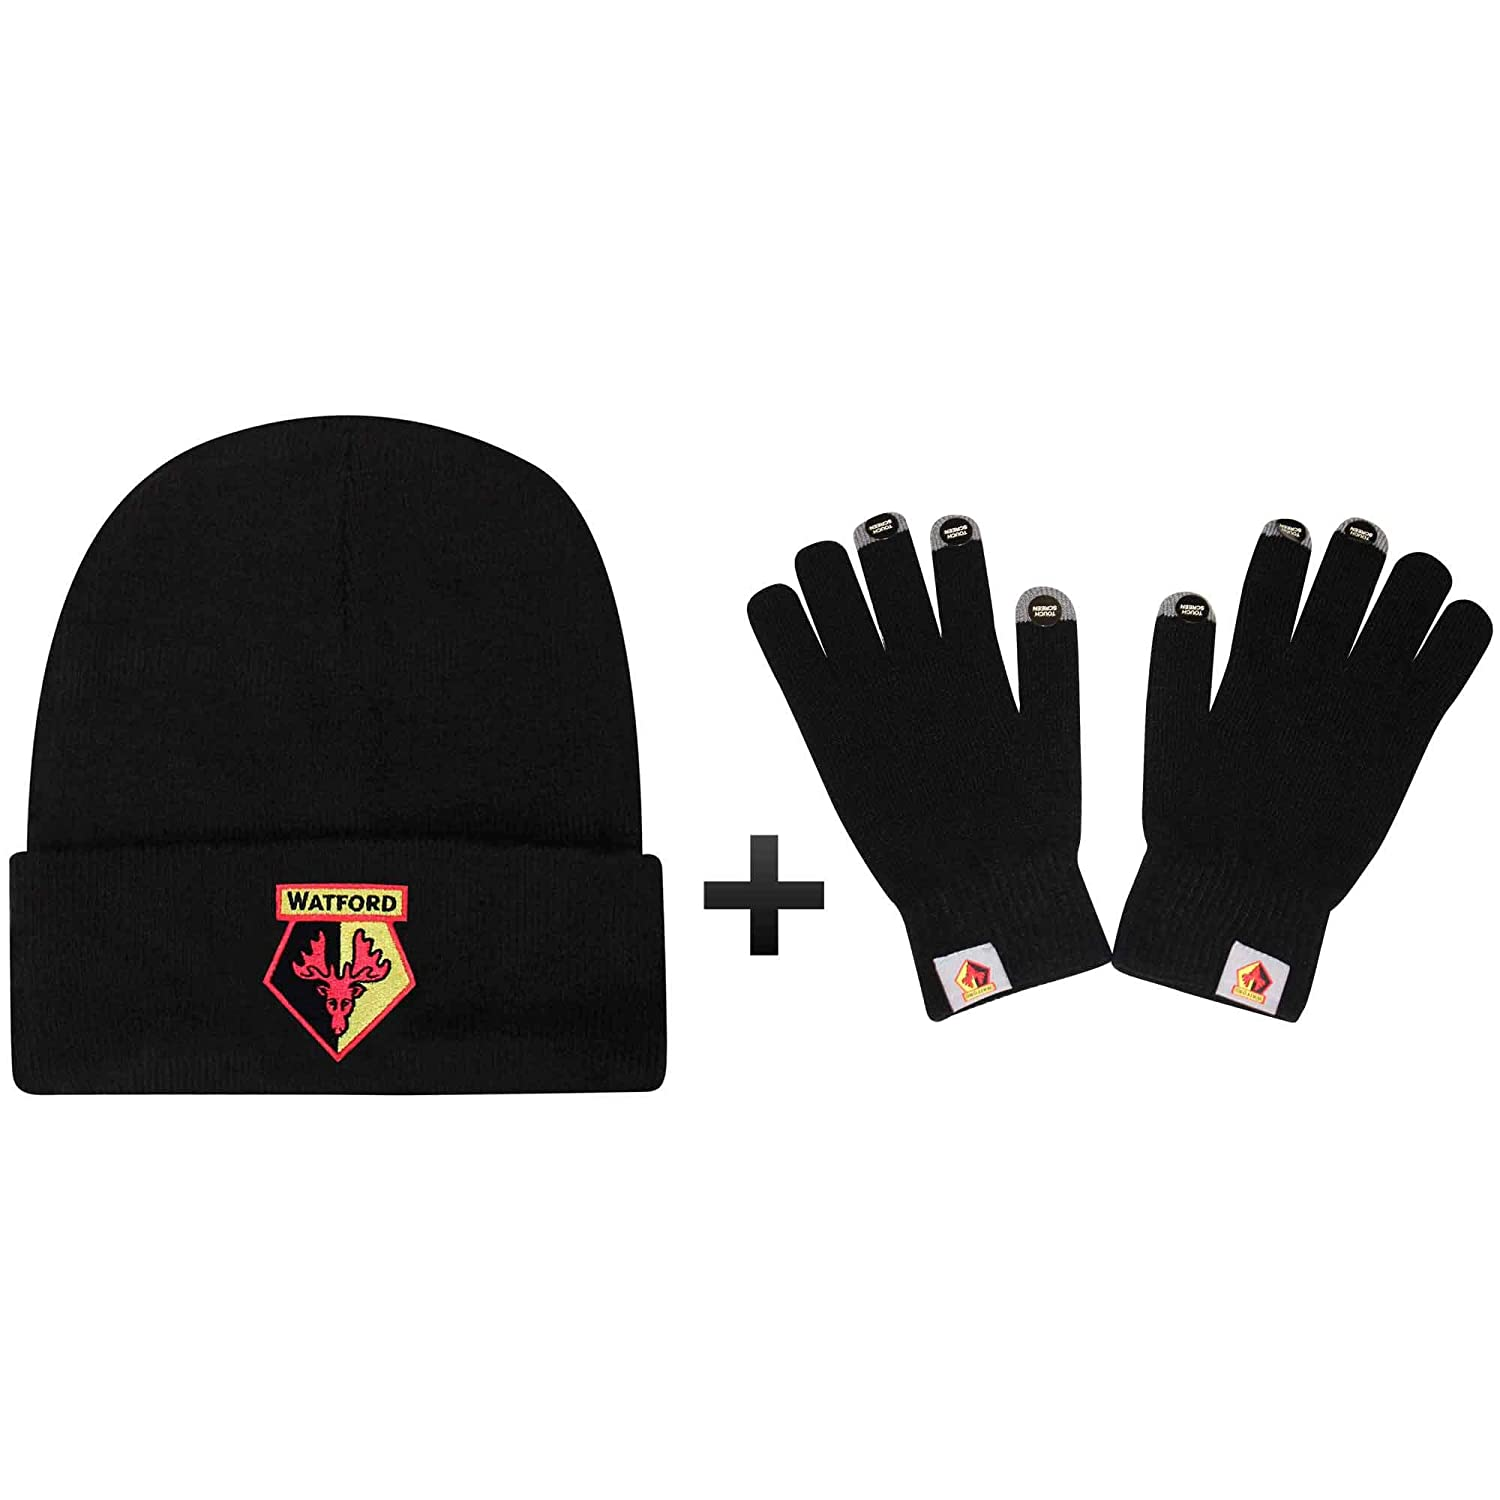 100/% Acrylic Official Watford FC Winter Warmers Gloves /& Hat Gift Set